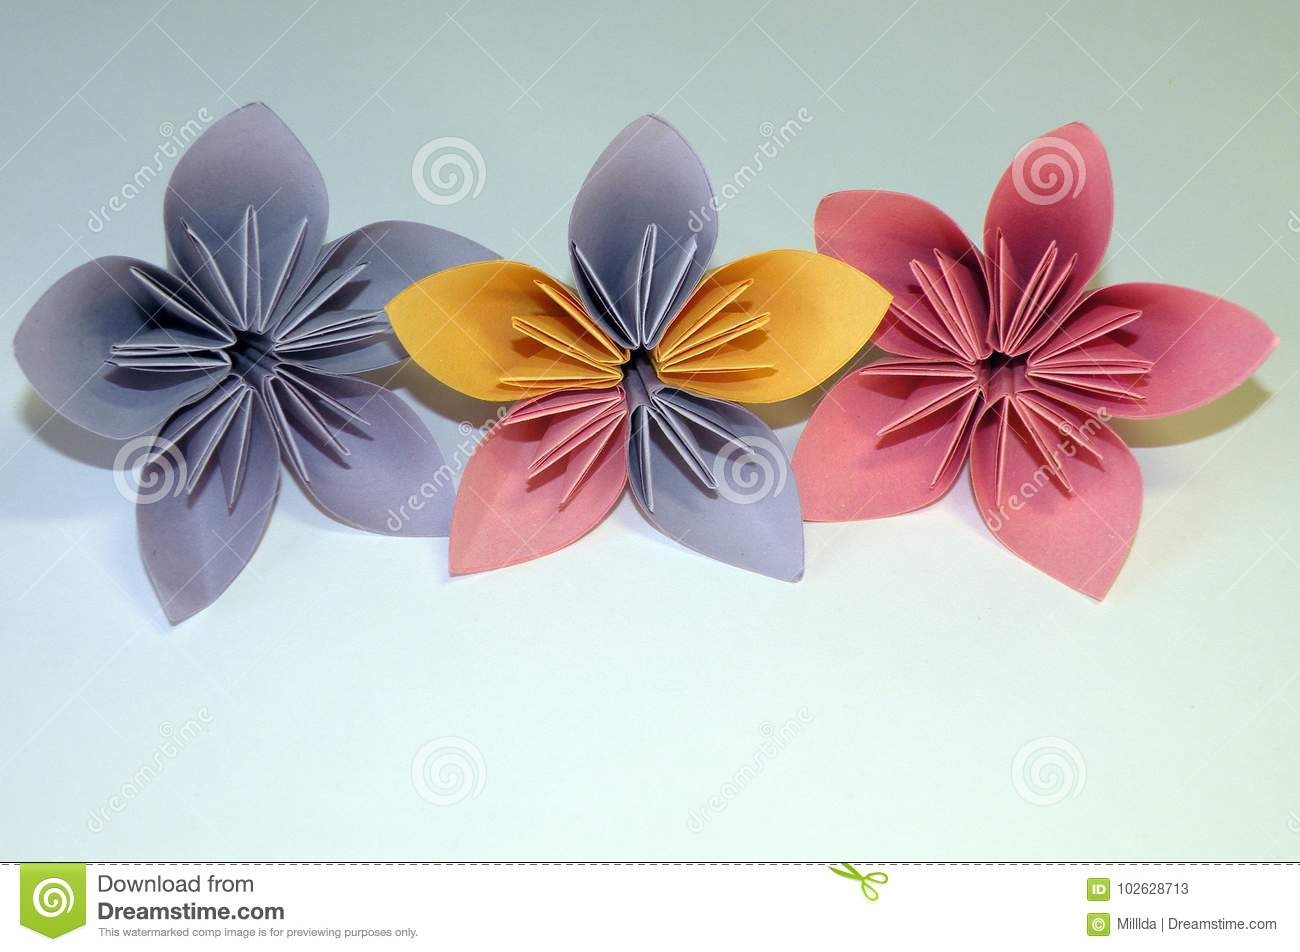 Colorful origami flowers stock image image of closeup 102628713 download colorful origami flowers stock image image of closeup 102628713 mightylinksfo